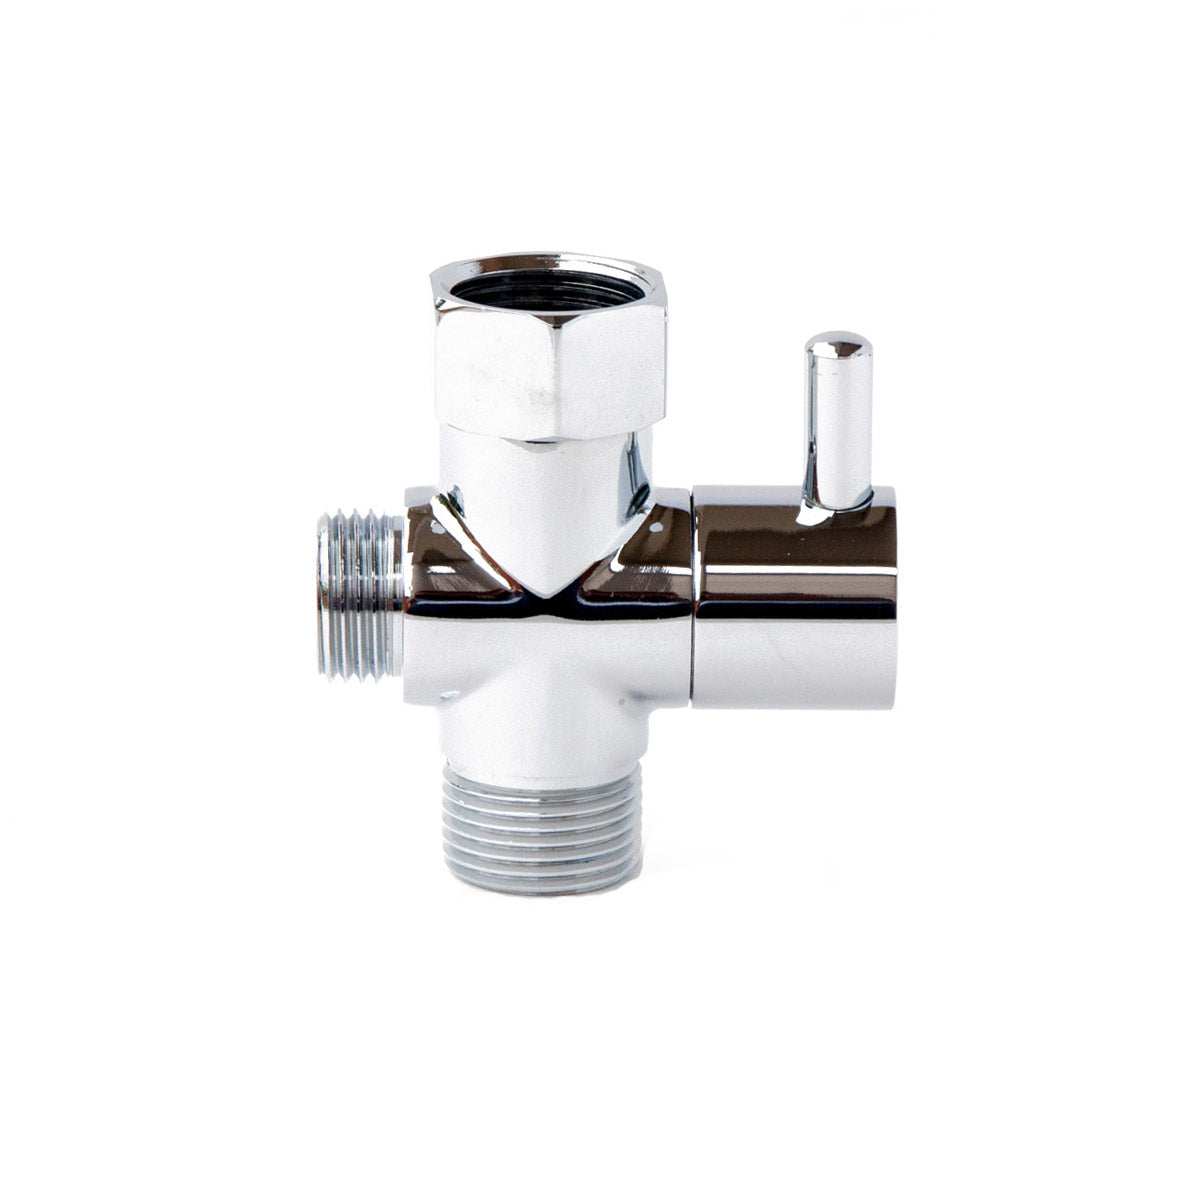 Bidet shower adapter